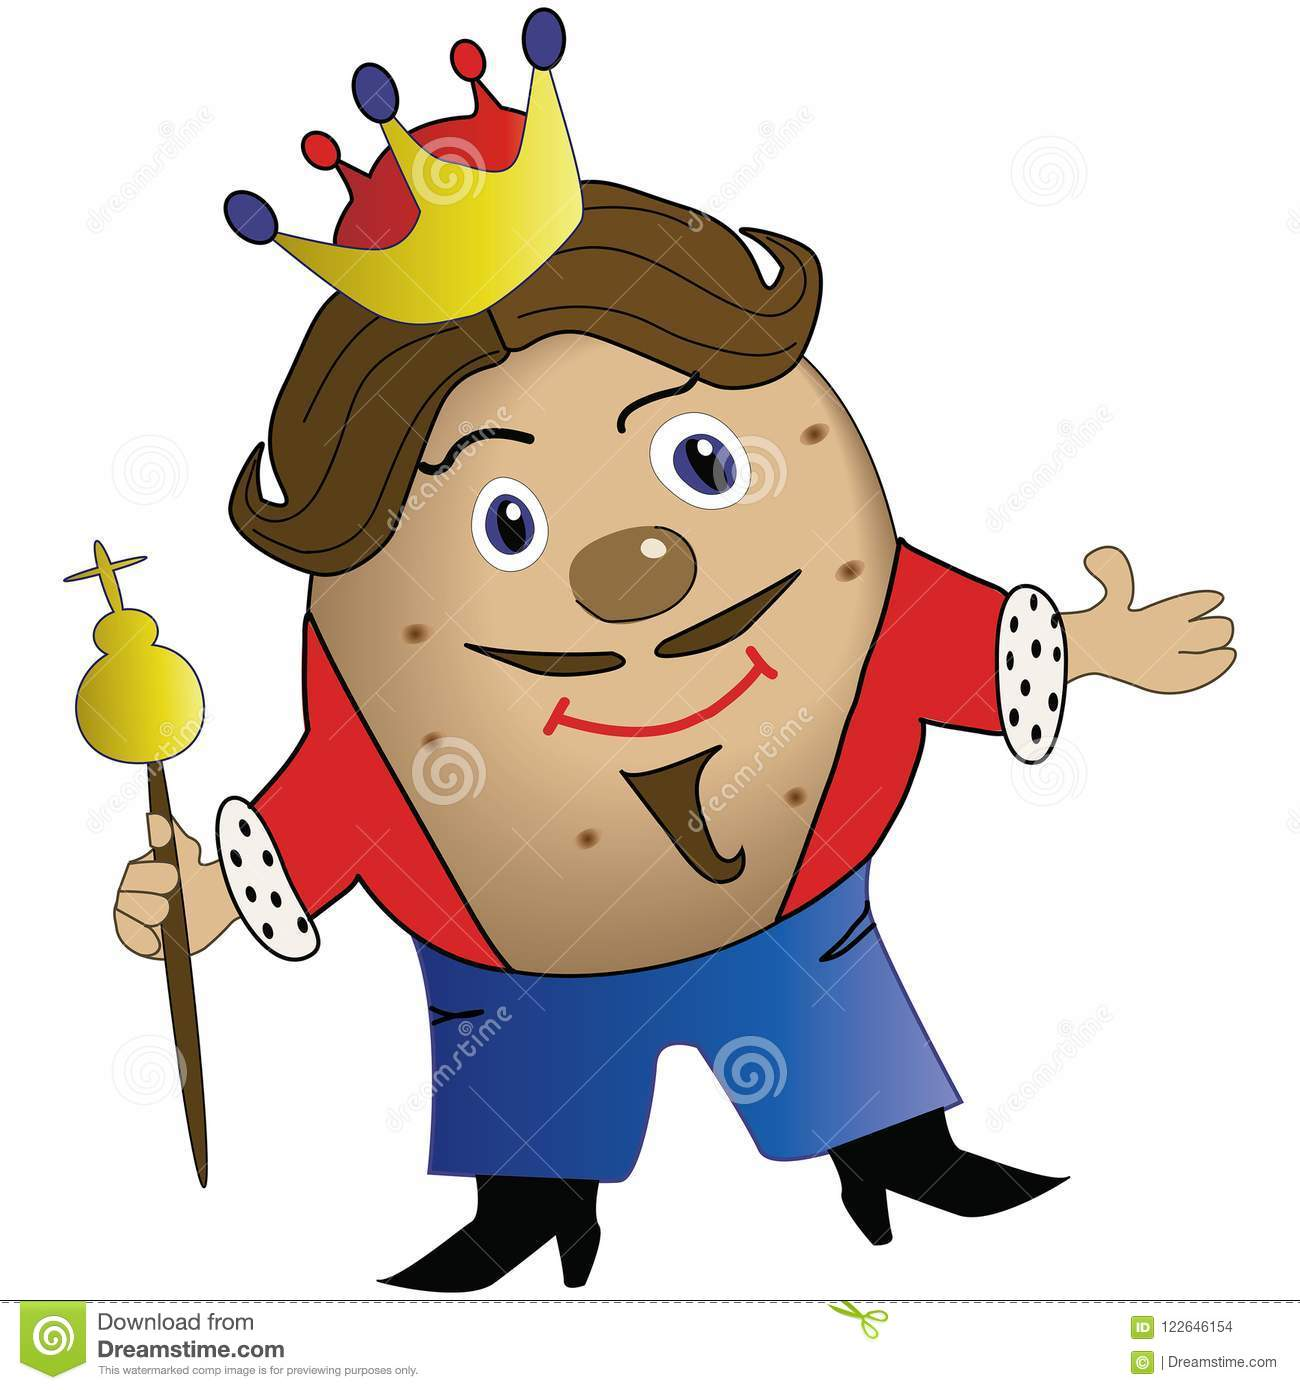 Cartoon King Crown Stock Illustrations 12 296 Cartoon King Crown Stock Illustrations Vectors Clipart Dreamstime Color illustration, and discover more than 10 million professional graphic resources on freepik. https www dreamstime com cartoon potato king crown rod majestic cheerful emperor image122646154